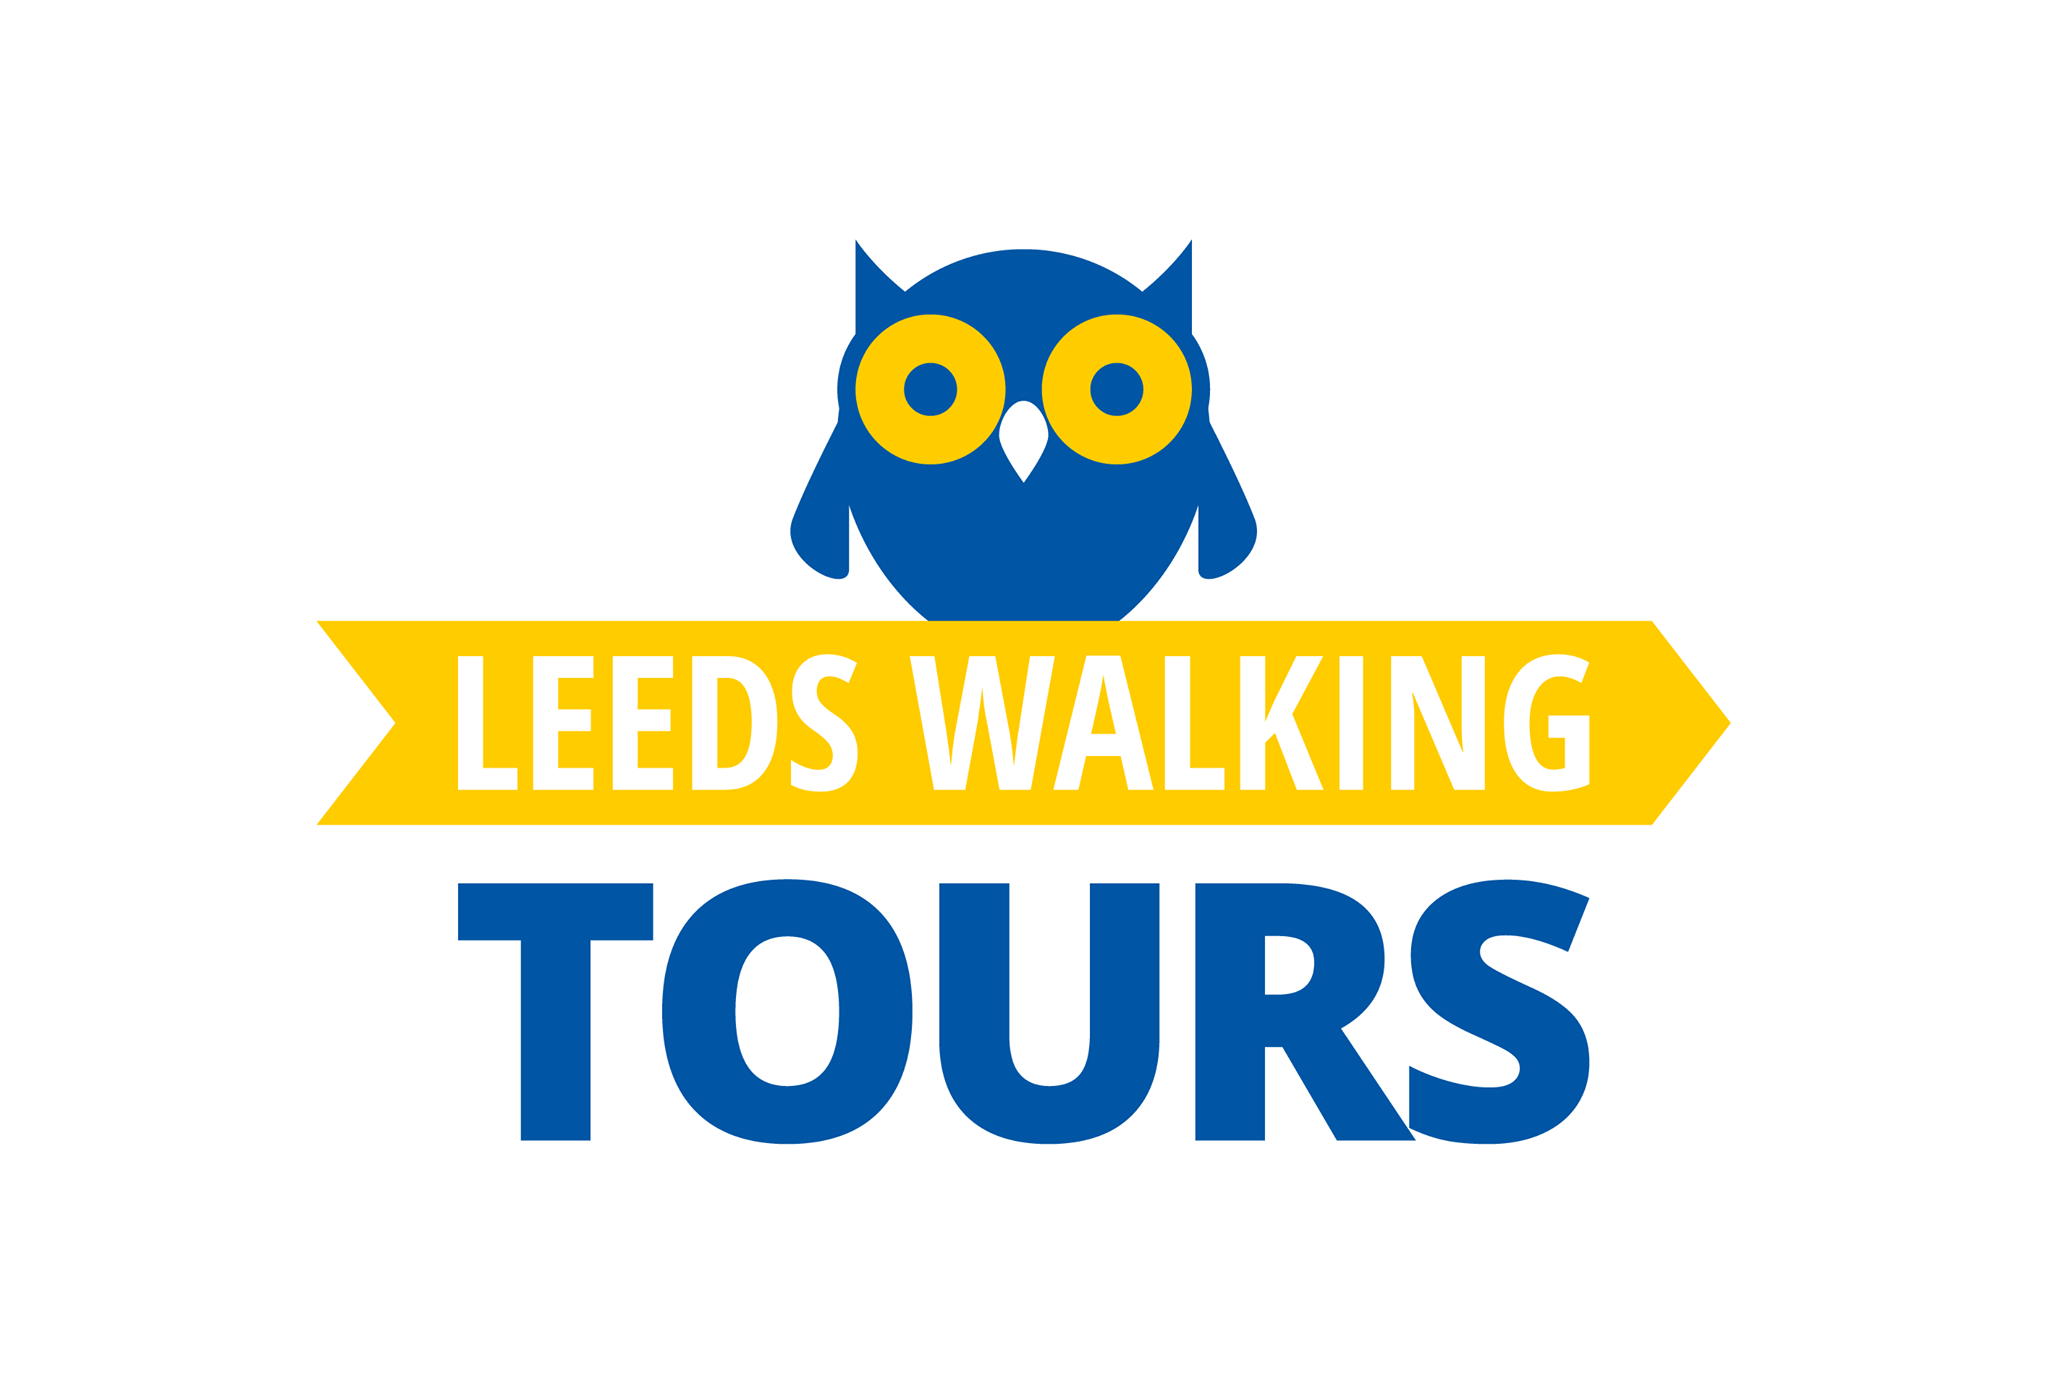 Leeds Walking Tours